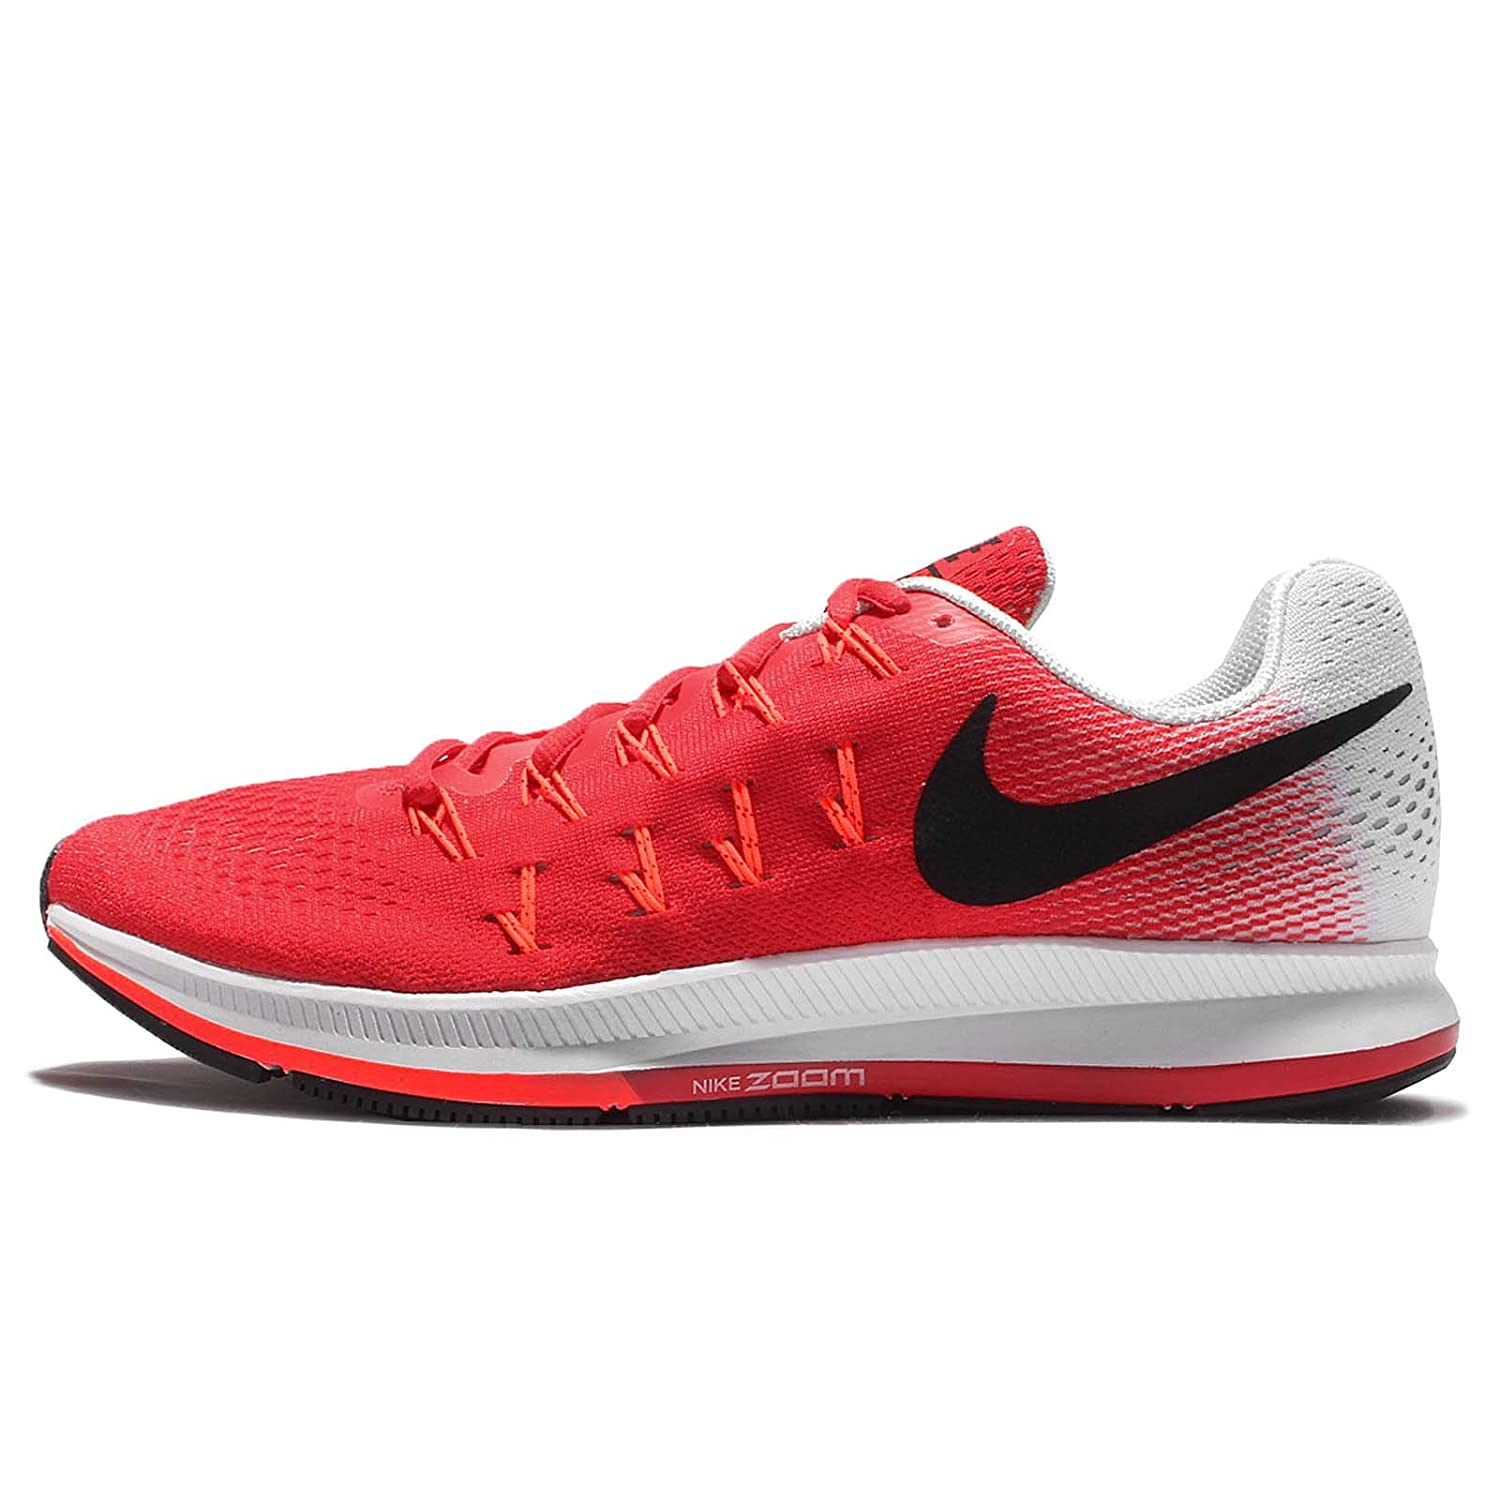 on sale 3f169 0bd4a Nike Men s Air Zoom Pegasus 33, Action Red Black-Pure Platinum-Total  Crimson - 9 D(M) US  Buy Online at Low Prices in India - Amazon.in